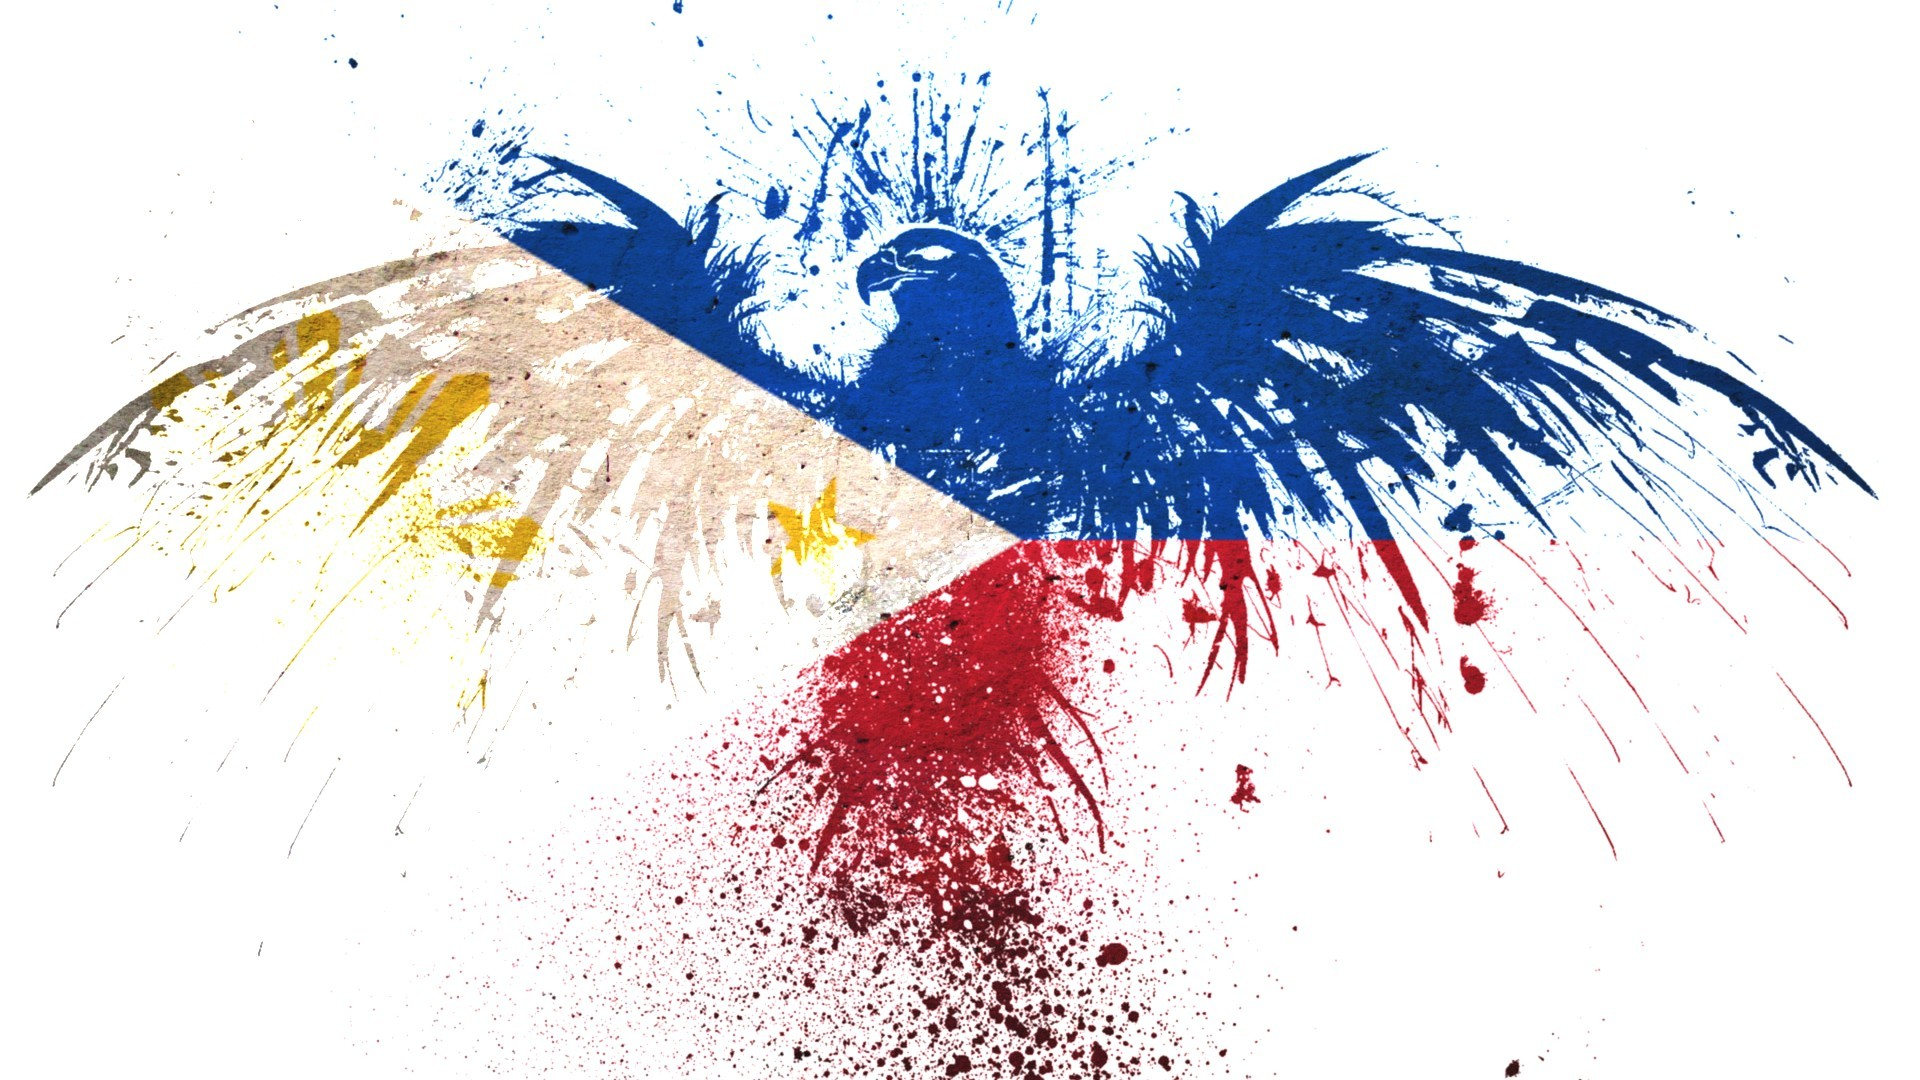 Hawk Flags Philippines White Background Wallpaper – MixHD wallpapers .